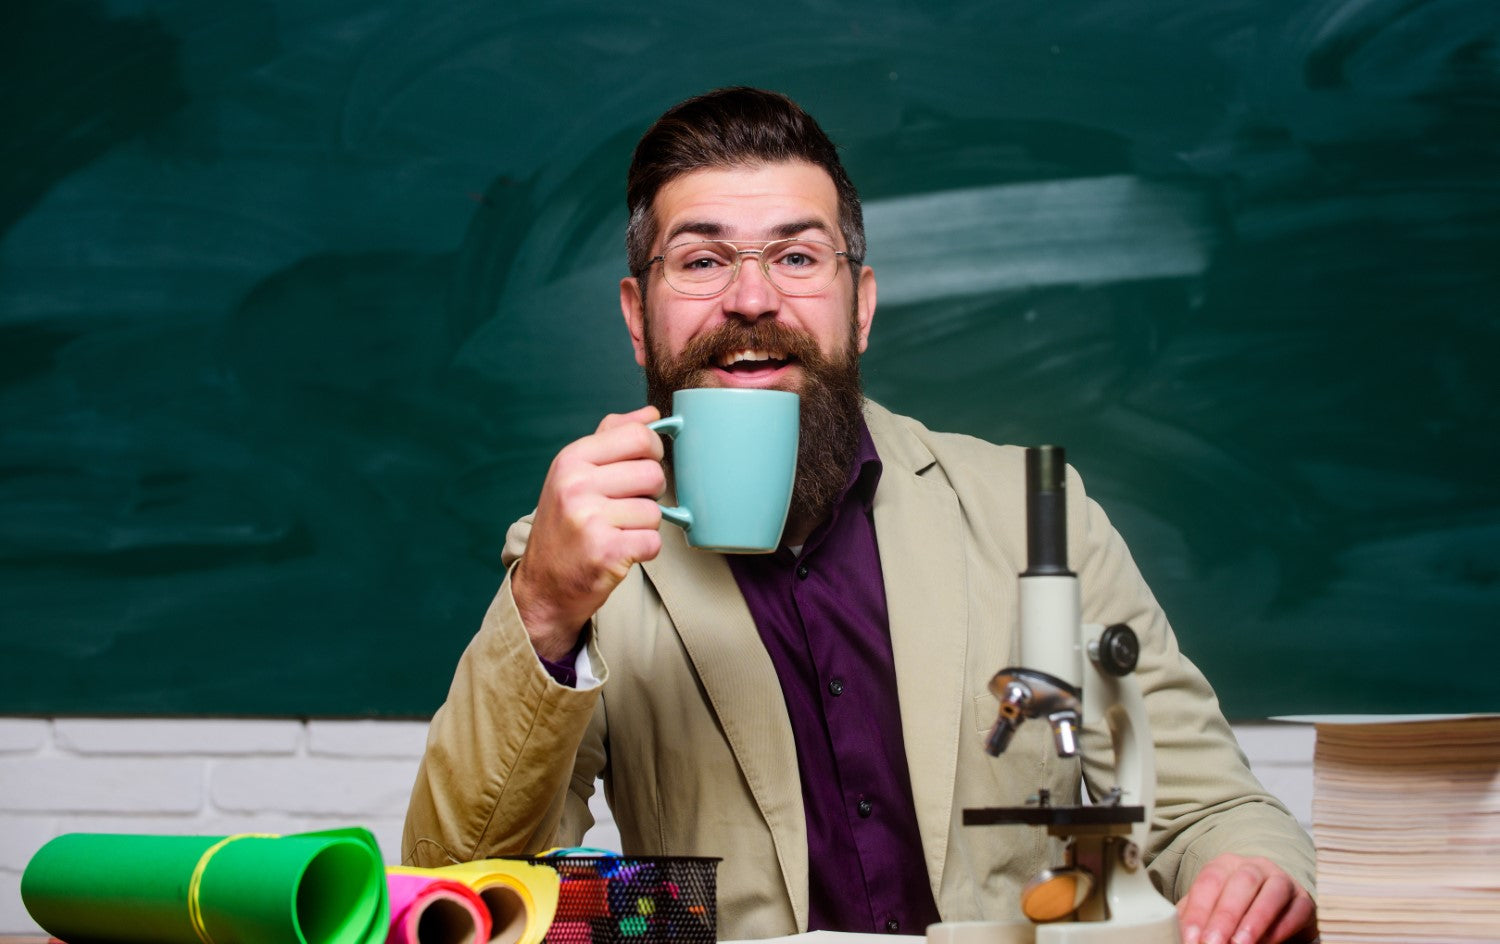 man holding coffee with microscope in front